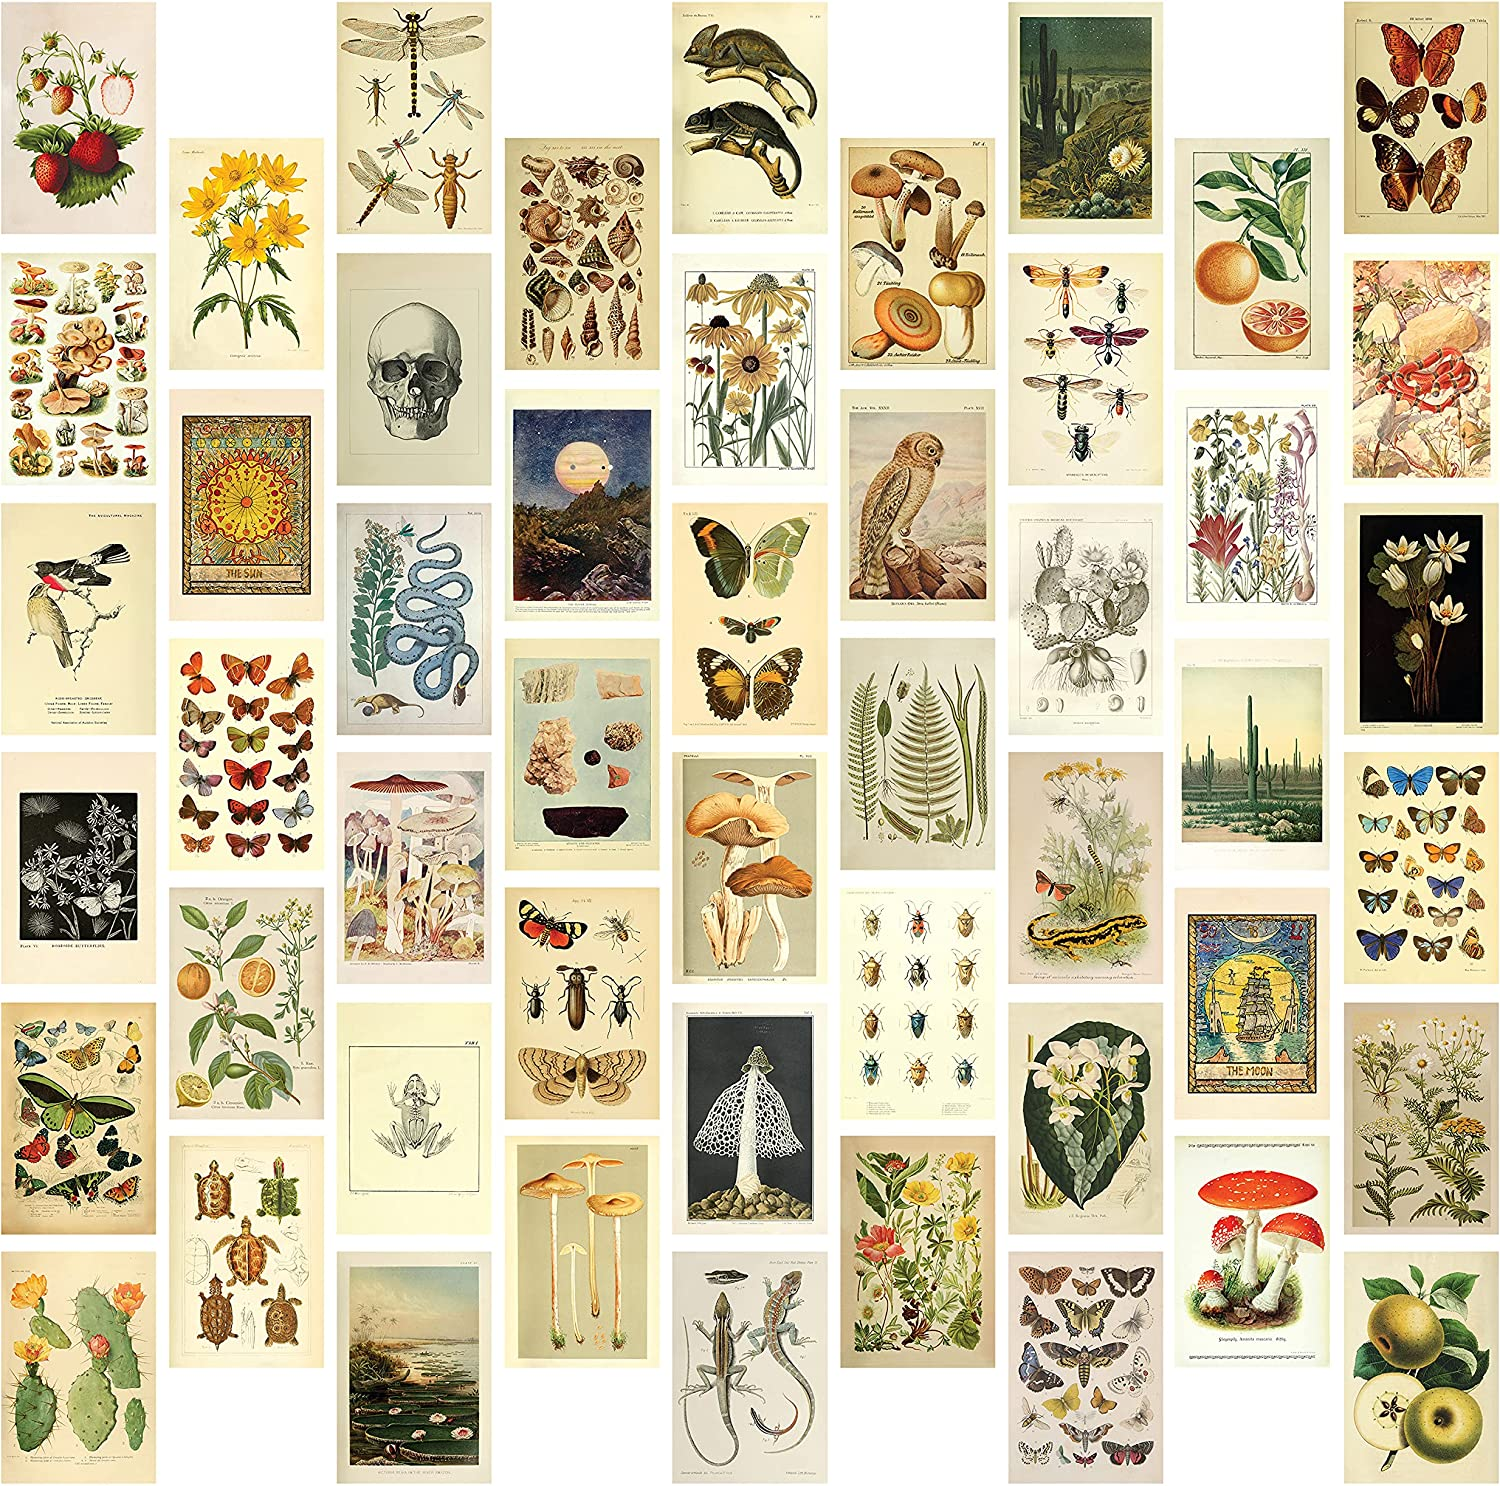 """Vintage Aesthetic Wall Collage Kit - 50 Mini Botanical Cottagecore Collage Art Posters (4"""" x 6""""), for Trendy Photo Wall, College Dorm Room Decor, Cottagecore Decor, Teen Room Boho Decor, Bedroom Wall Art for Girls, includes Vintage Botanical Art Prints, Butterfly Wall Art, Tarot, and more"""